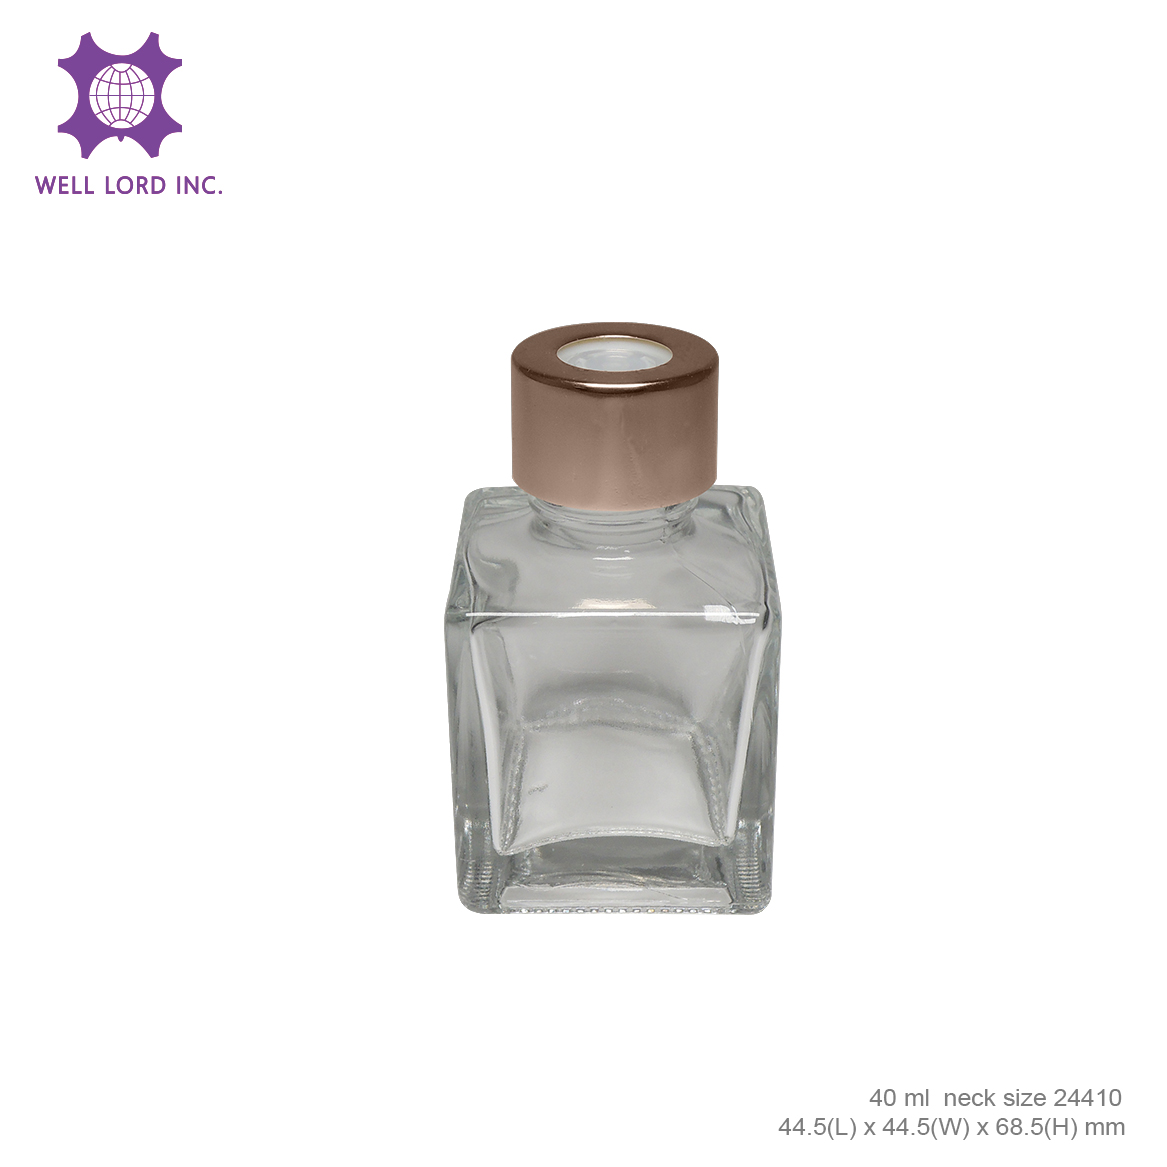 Beach Reed Diffuser oil refill glass bottle cube size 40ml rose gold